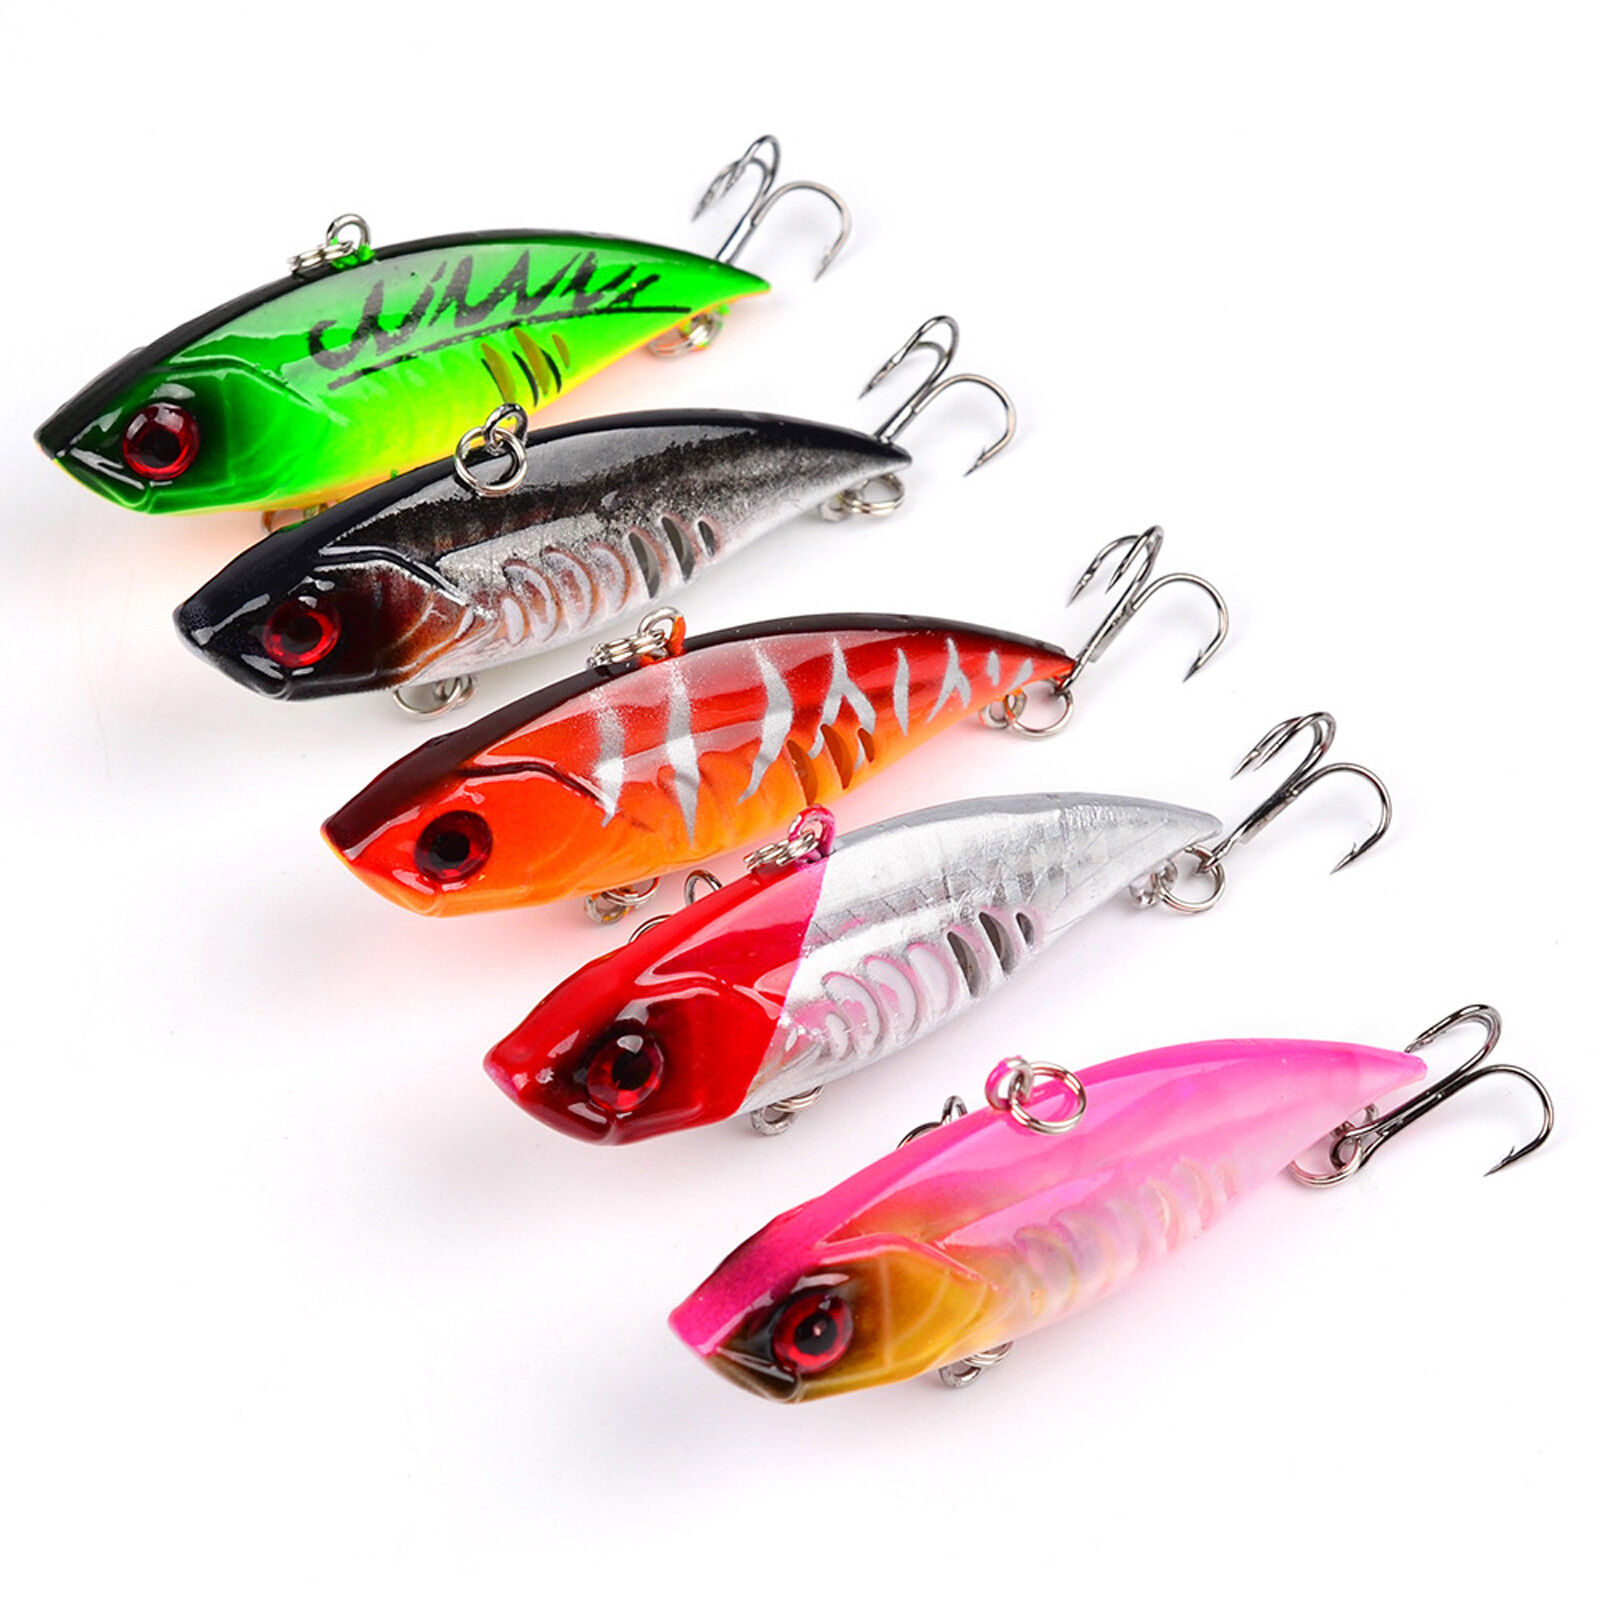 5PCS Fishing Bass Fish VIB Minnow Crankbaits lure hook baits 6.5cm//11g